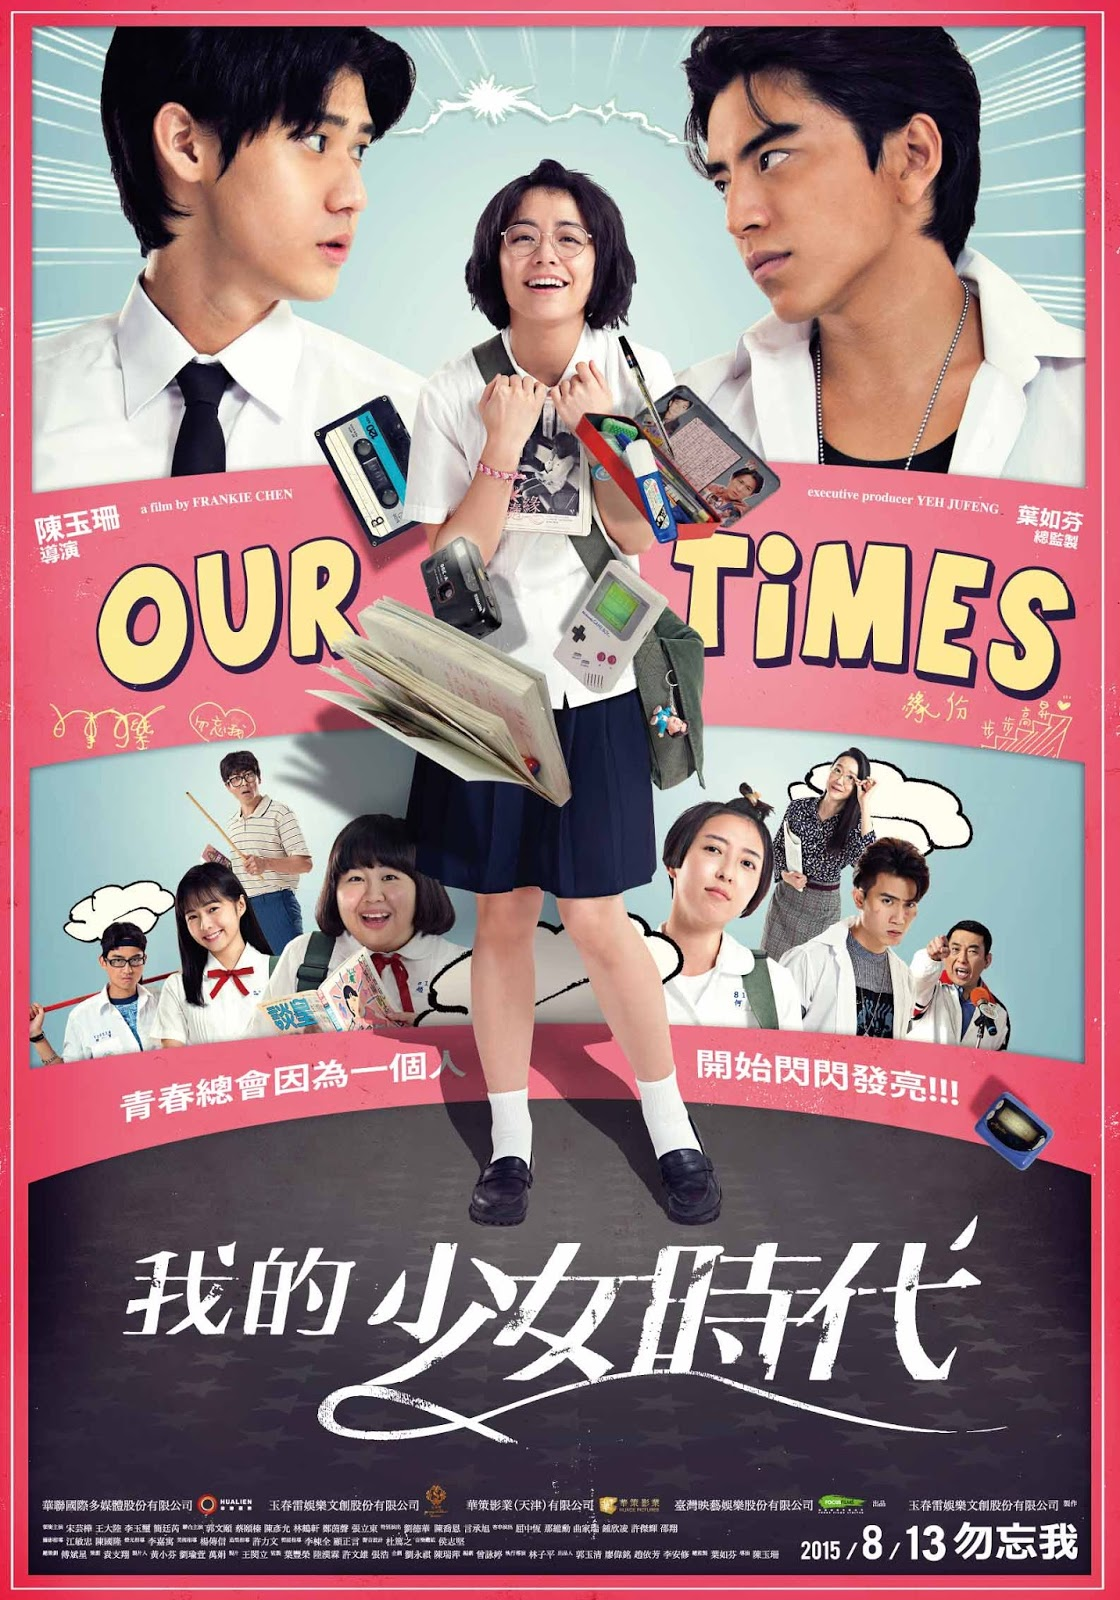 Download Movie Our Times 2015 BluRay 480p 720p Subtitle Indonesia English